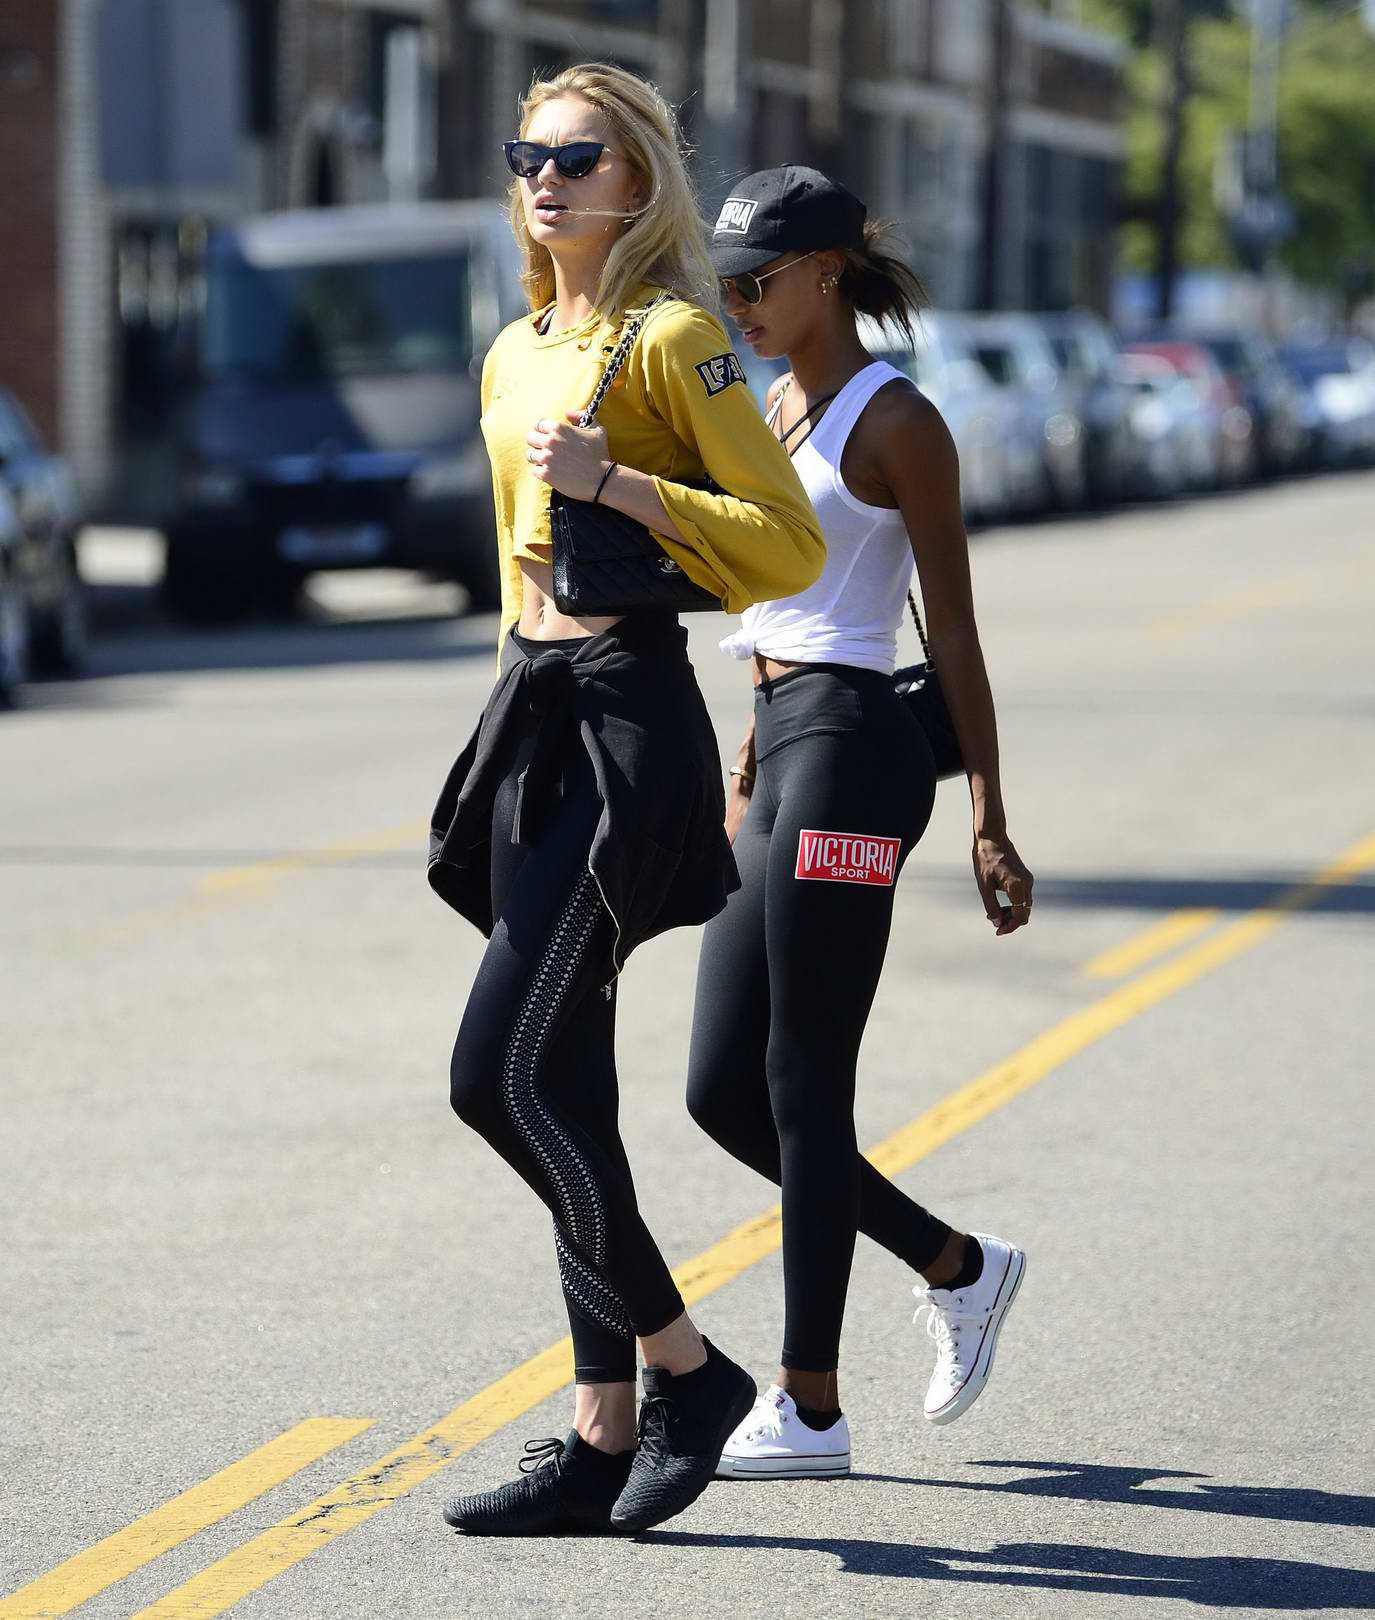 Romee Strijd and Jasmine Tookes enjoy some juice while out for shopping at Venice Beach, Los Angeles